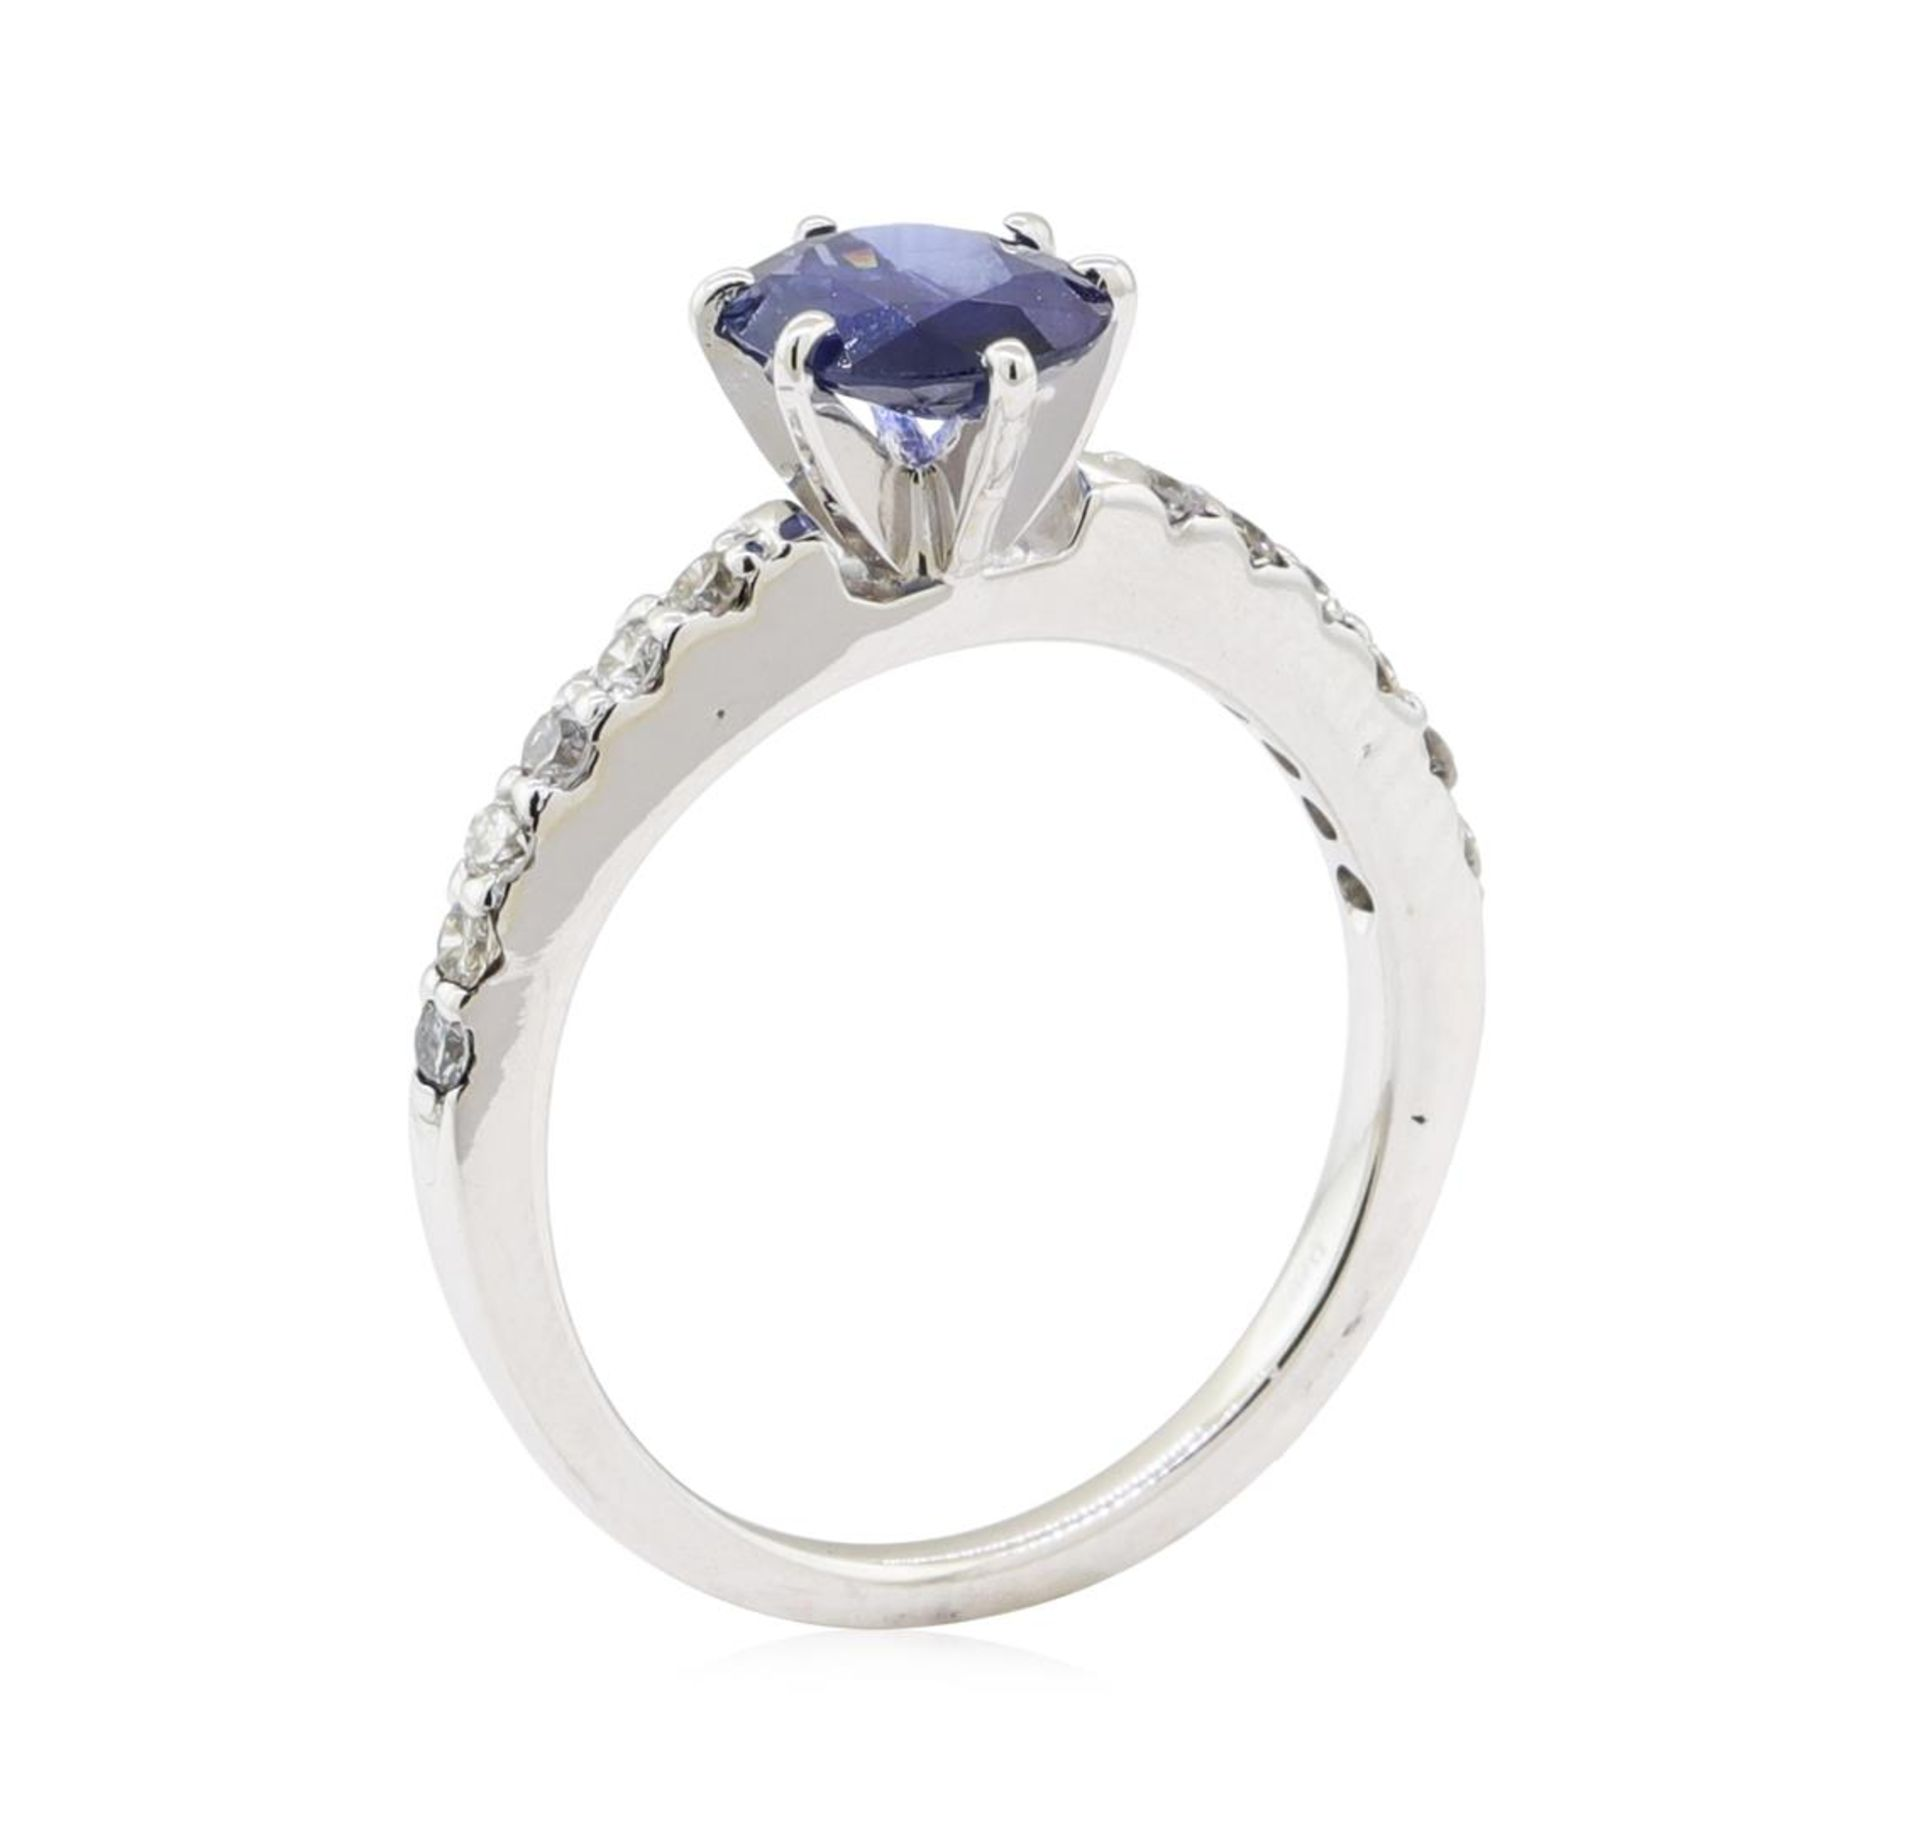 1.25ctw Sapphire and Diamond Ring - 14KT White Gold - Image 4 of 4